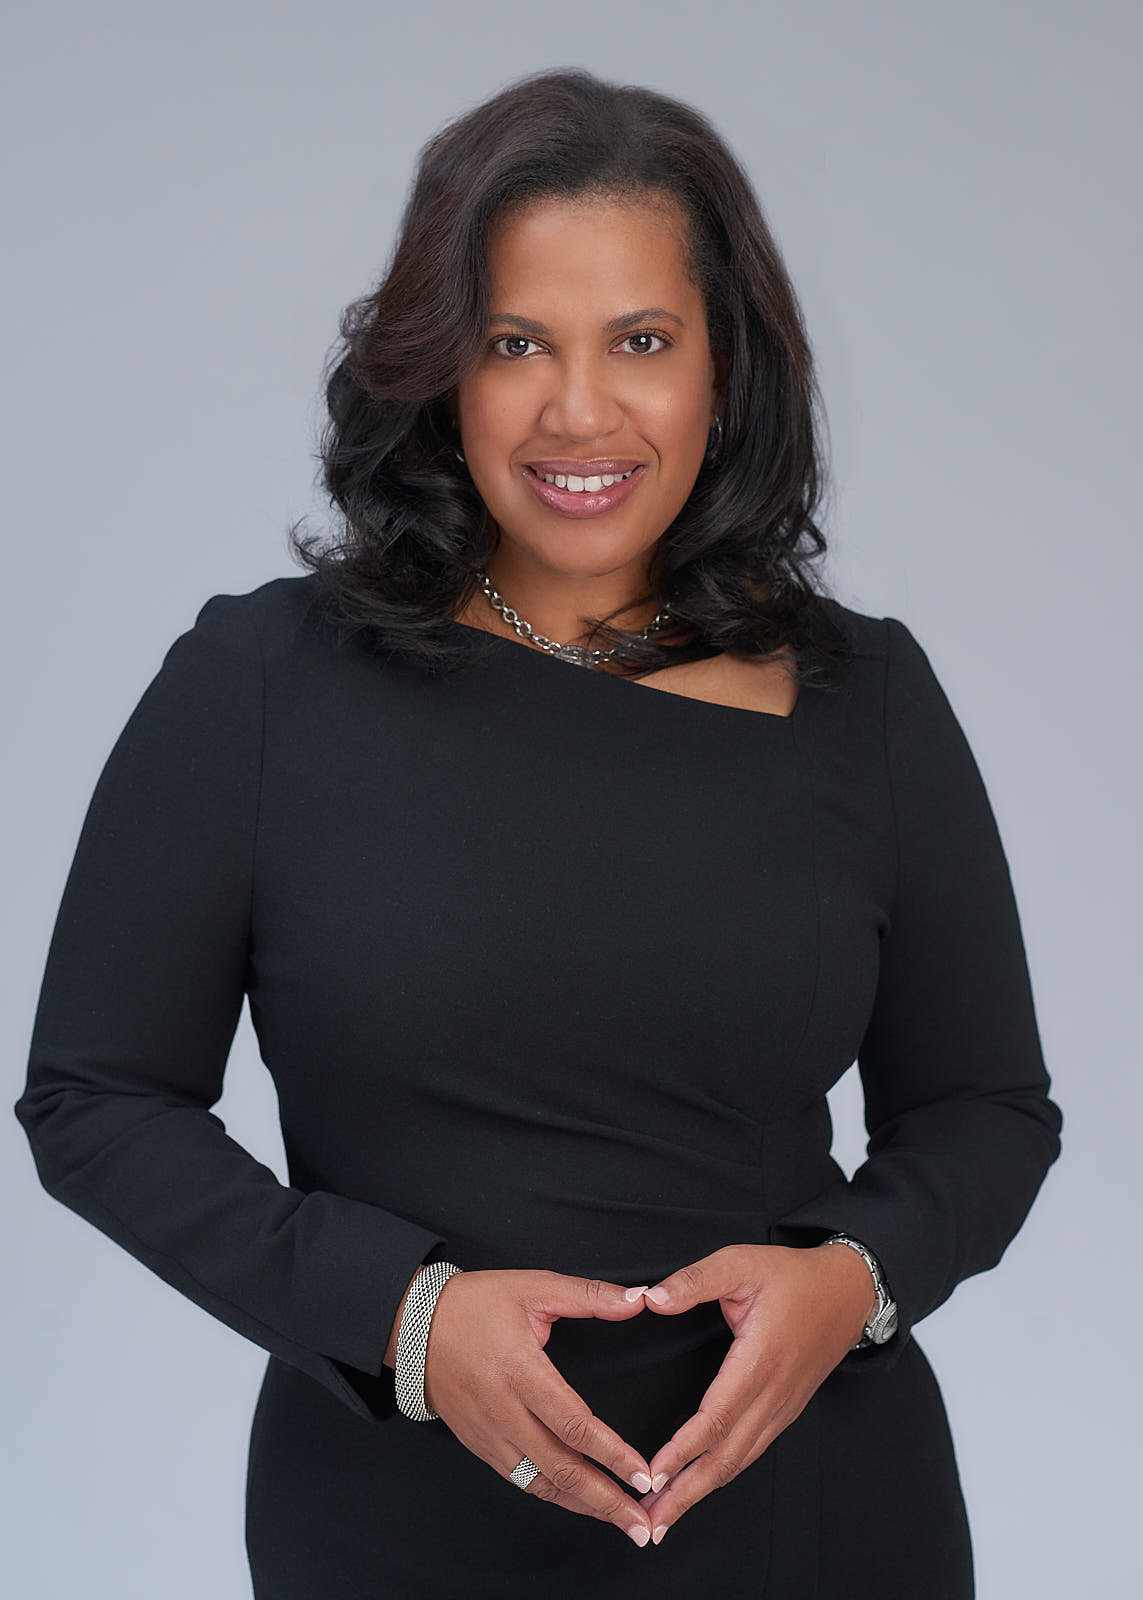 Business woman professional headshot by Harman Portraits